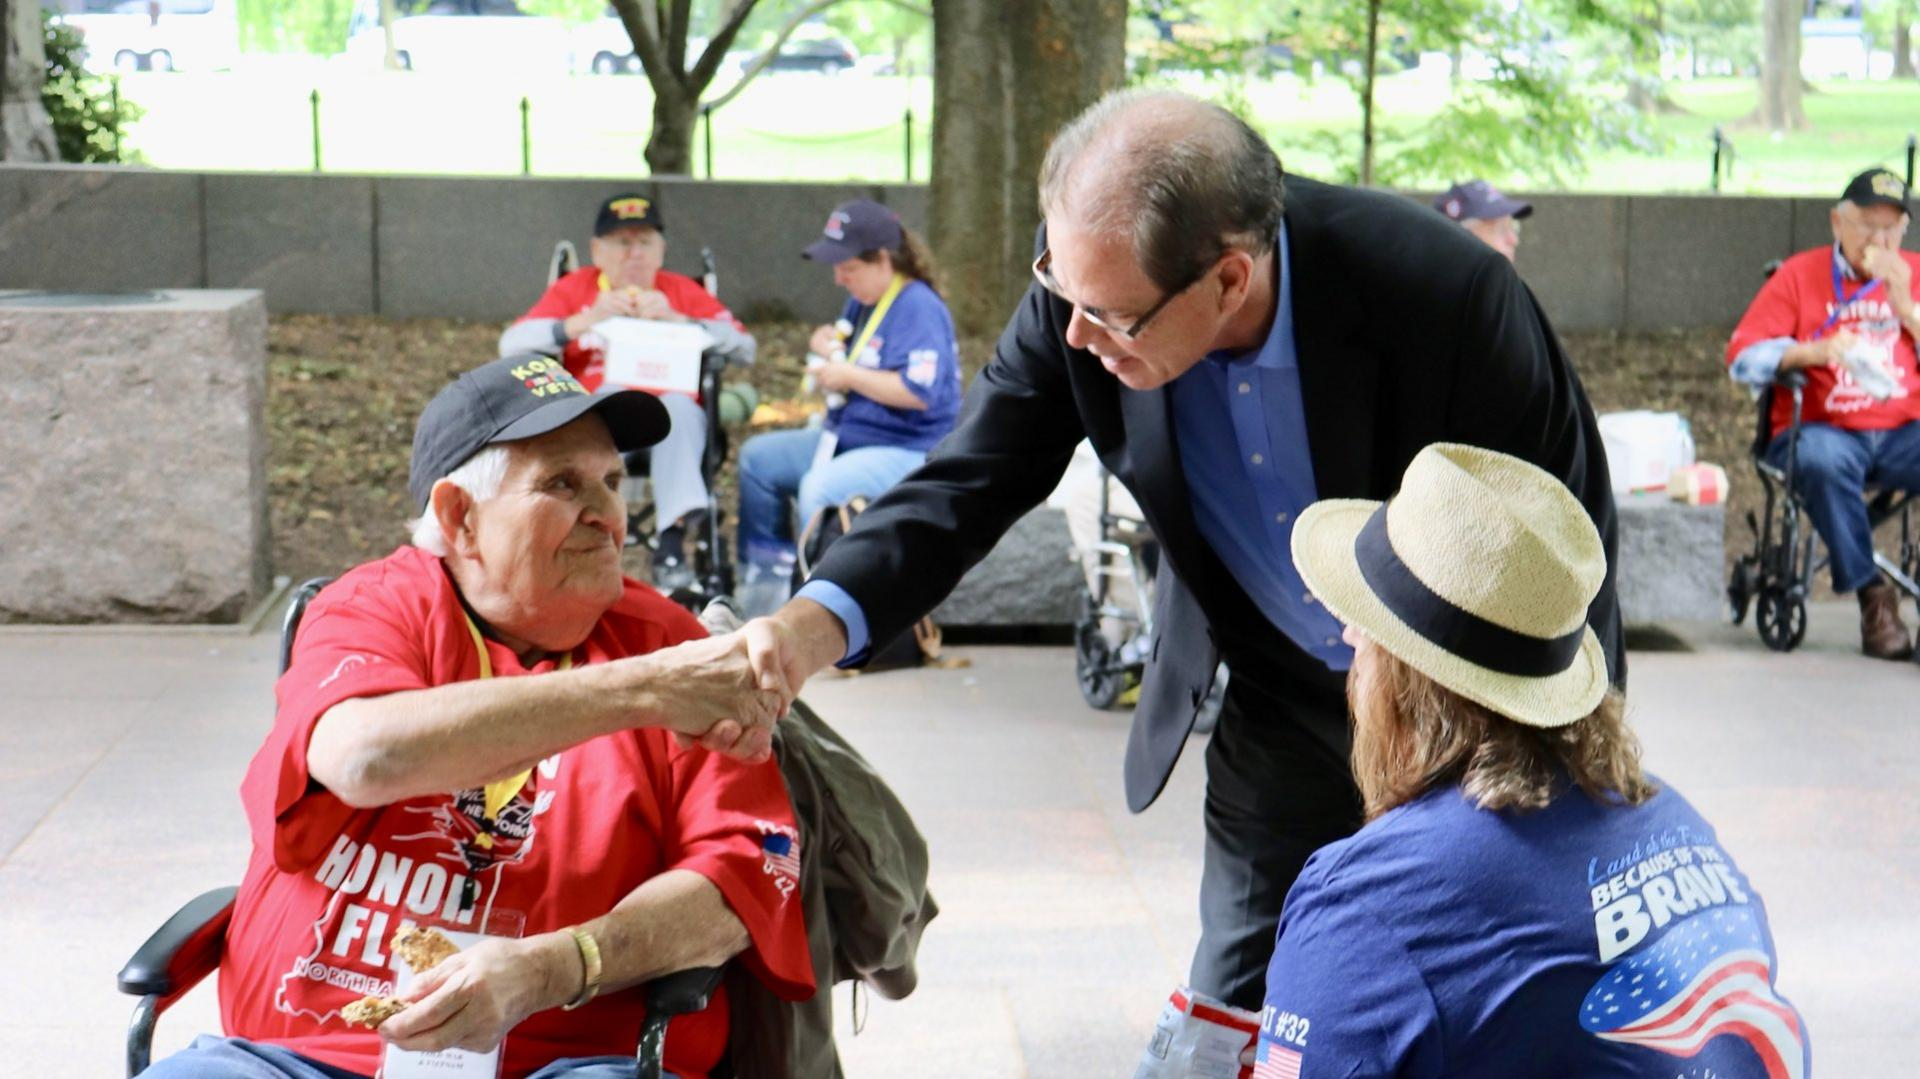 Senator Mike Braun Meeting with Veteran Constituents